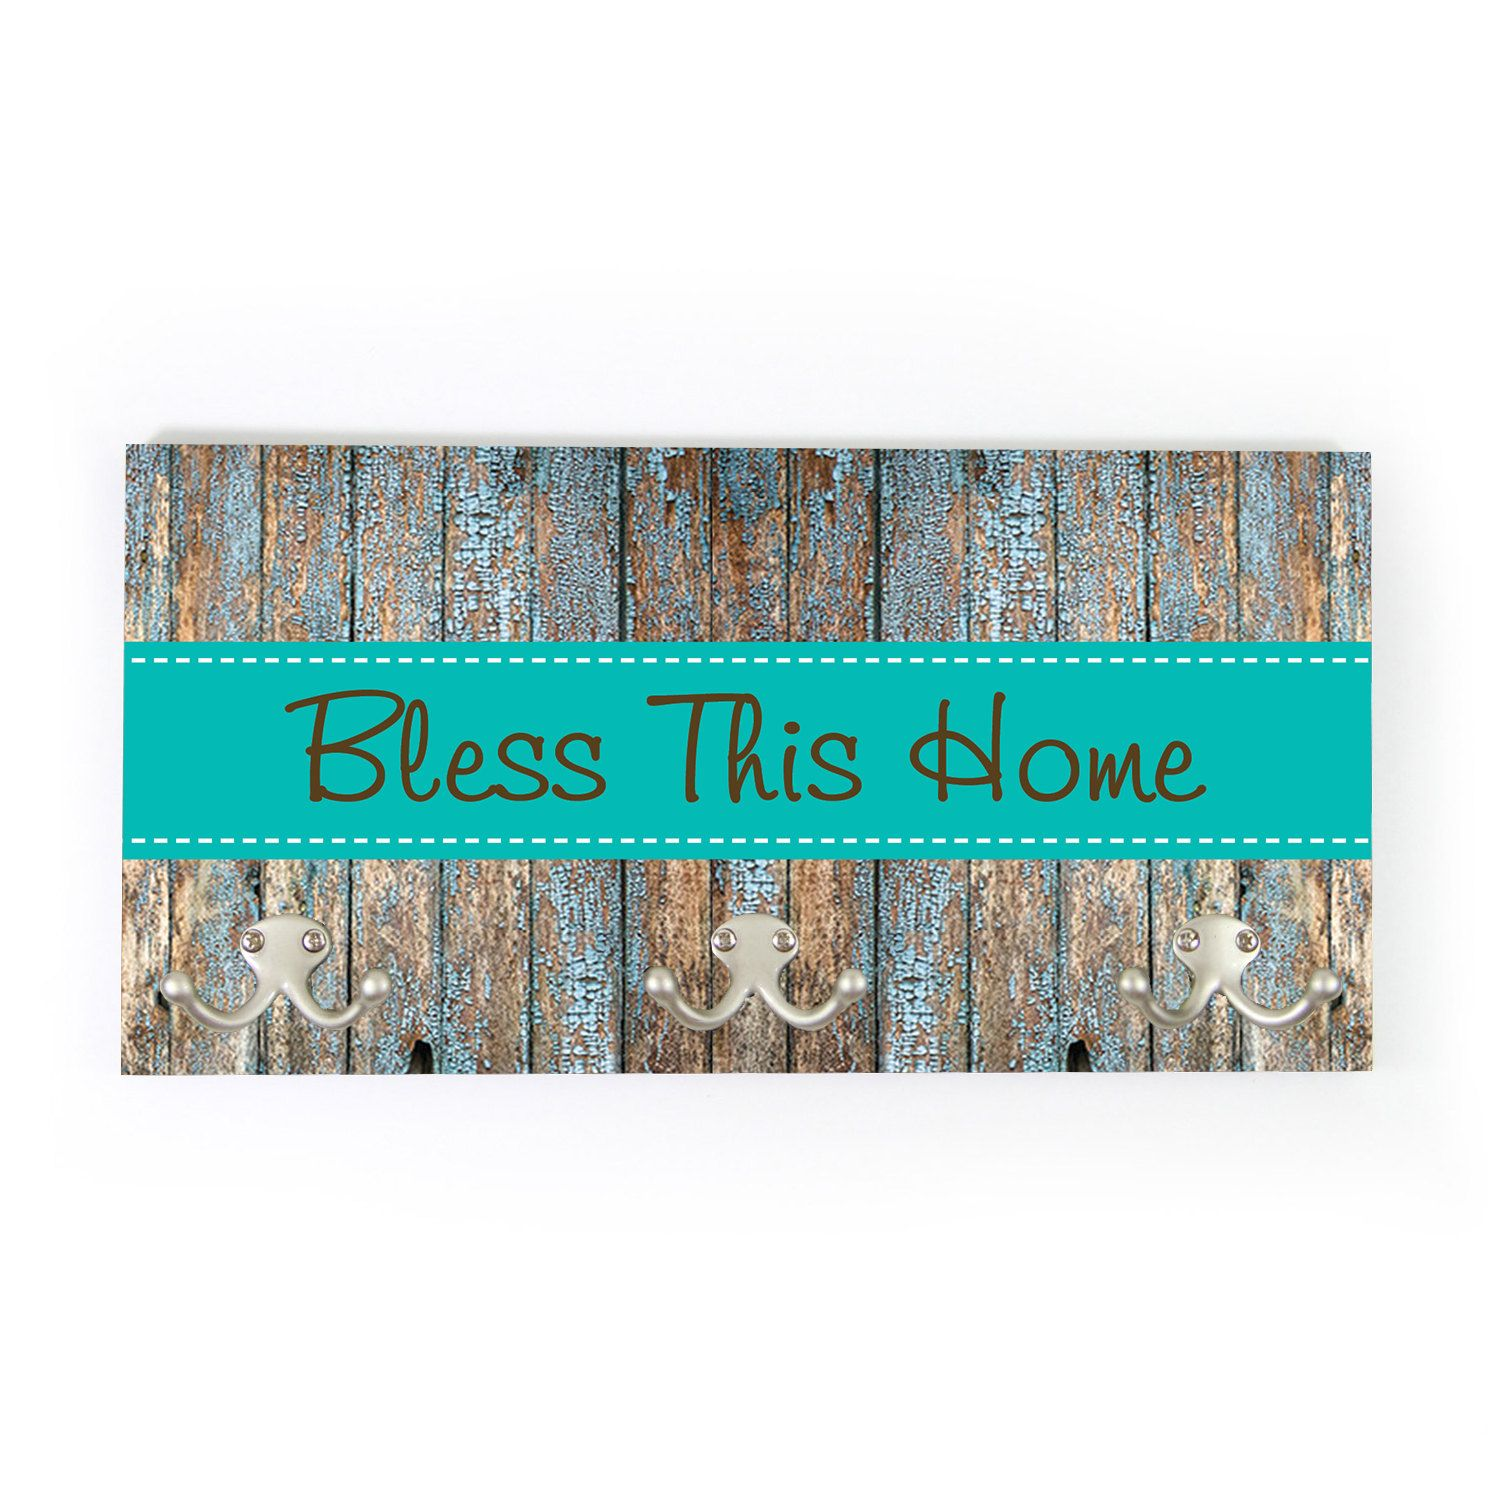 Bless This Home Personalized Coat Rack Wall Coat Rack Wedding Gift Coat Hanger Wall Mount Rustic Personalized Housewarming Gift New Home By C House Warming Gifts